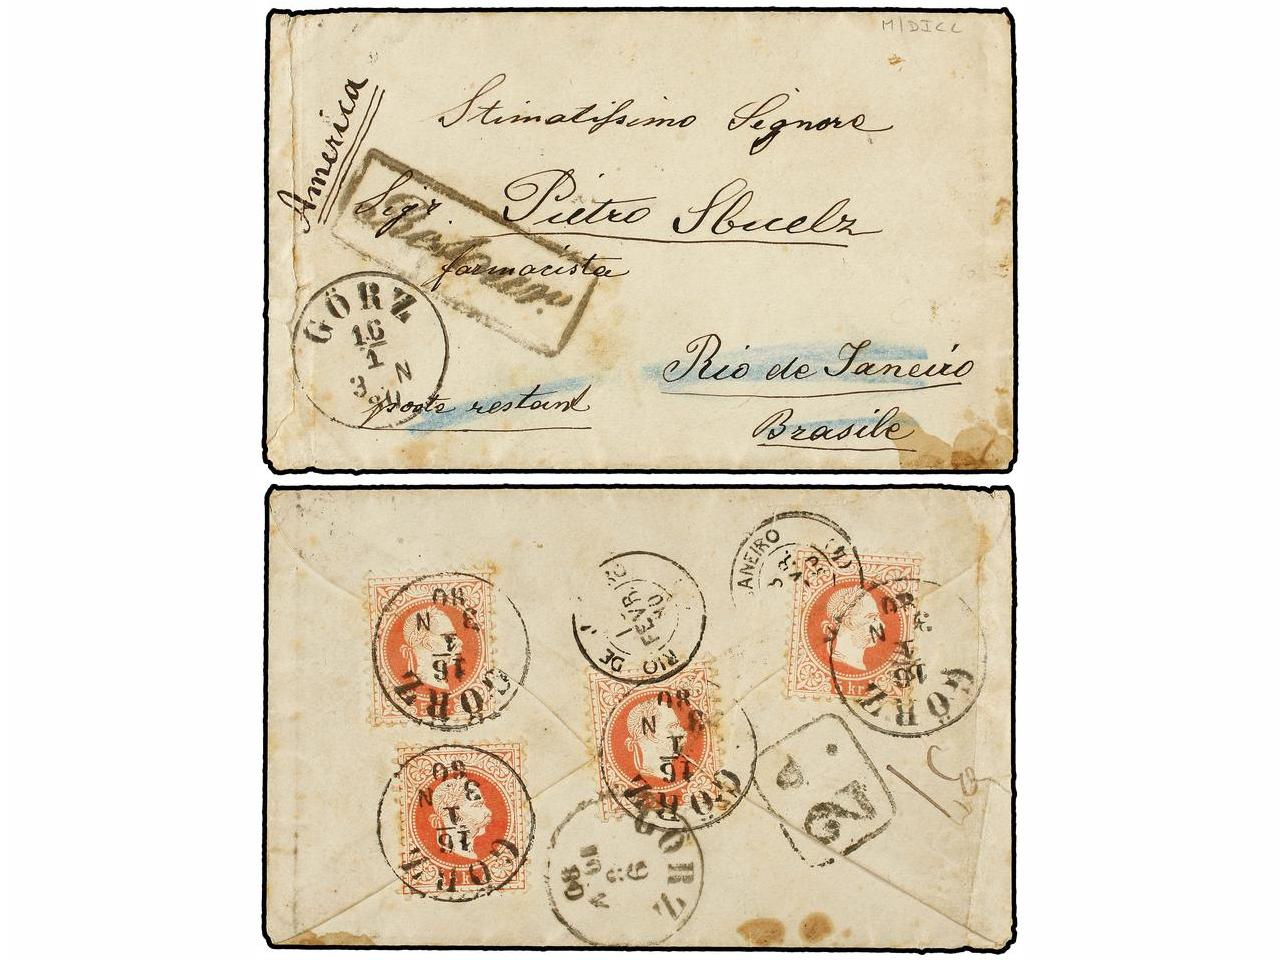 ✉ AUSTRIA. 1880 (Jan 16). Cover from Gorz to the Poste Resta